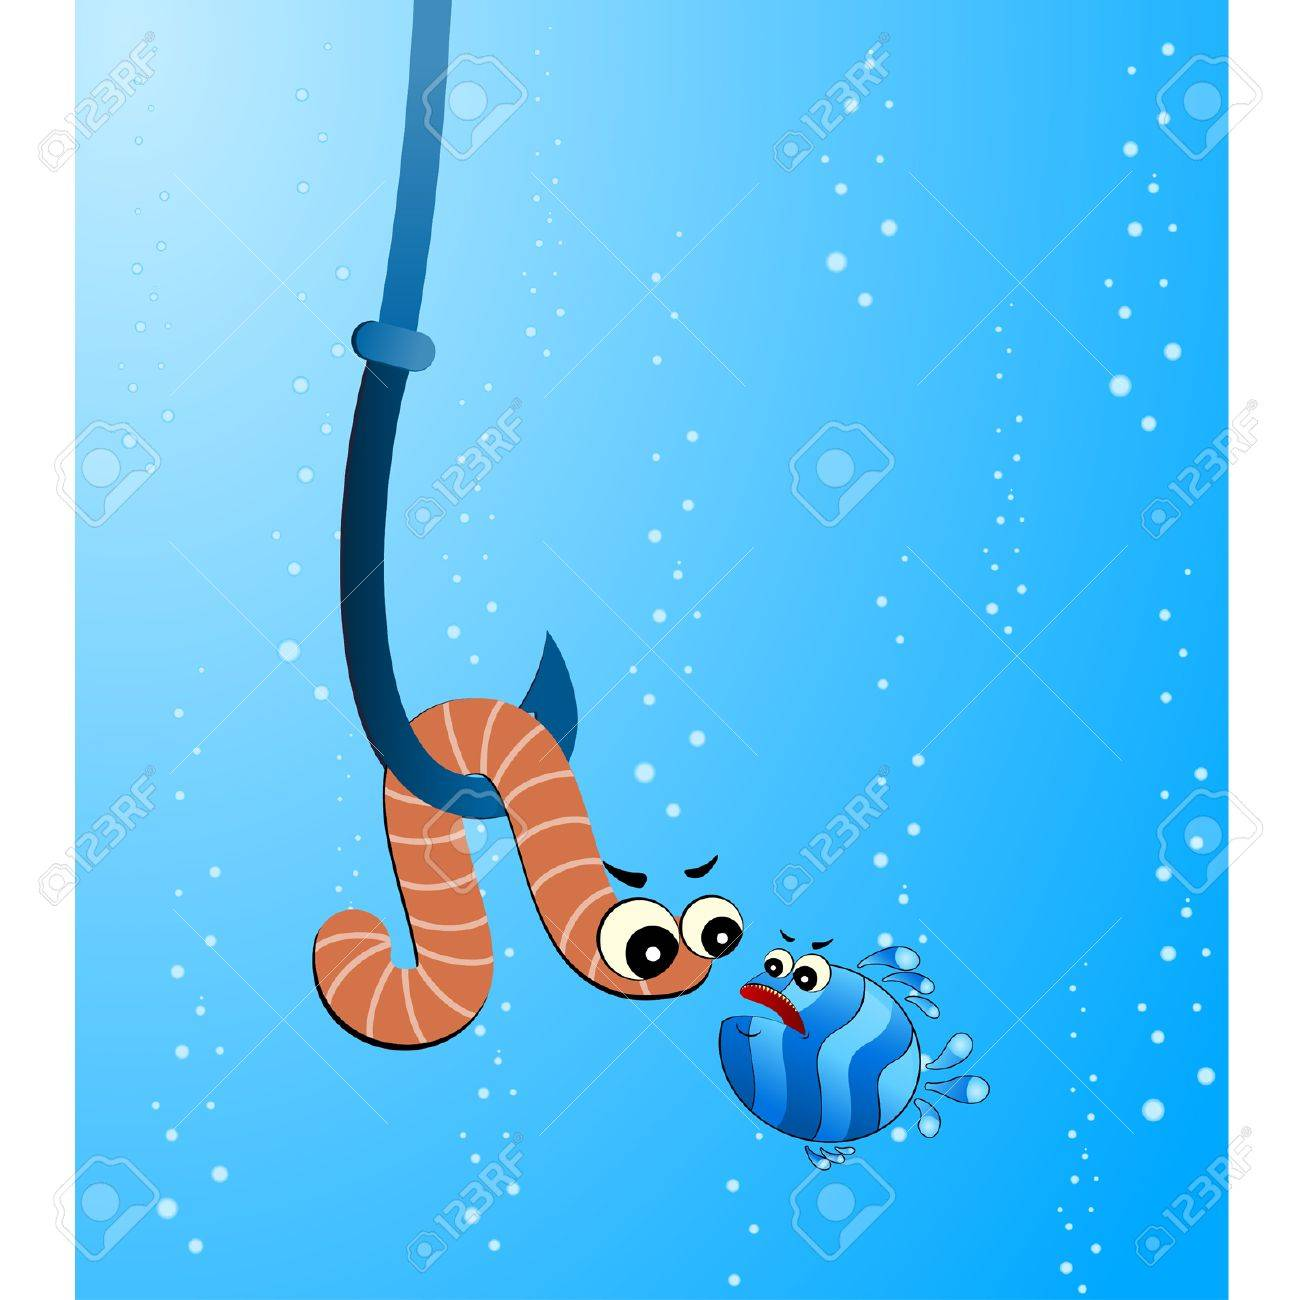 Fish Eating Fish Cartoon Ittle Cartoon Funny Fish Eats